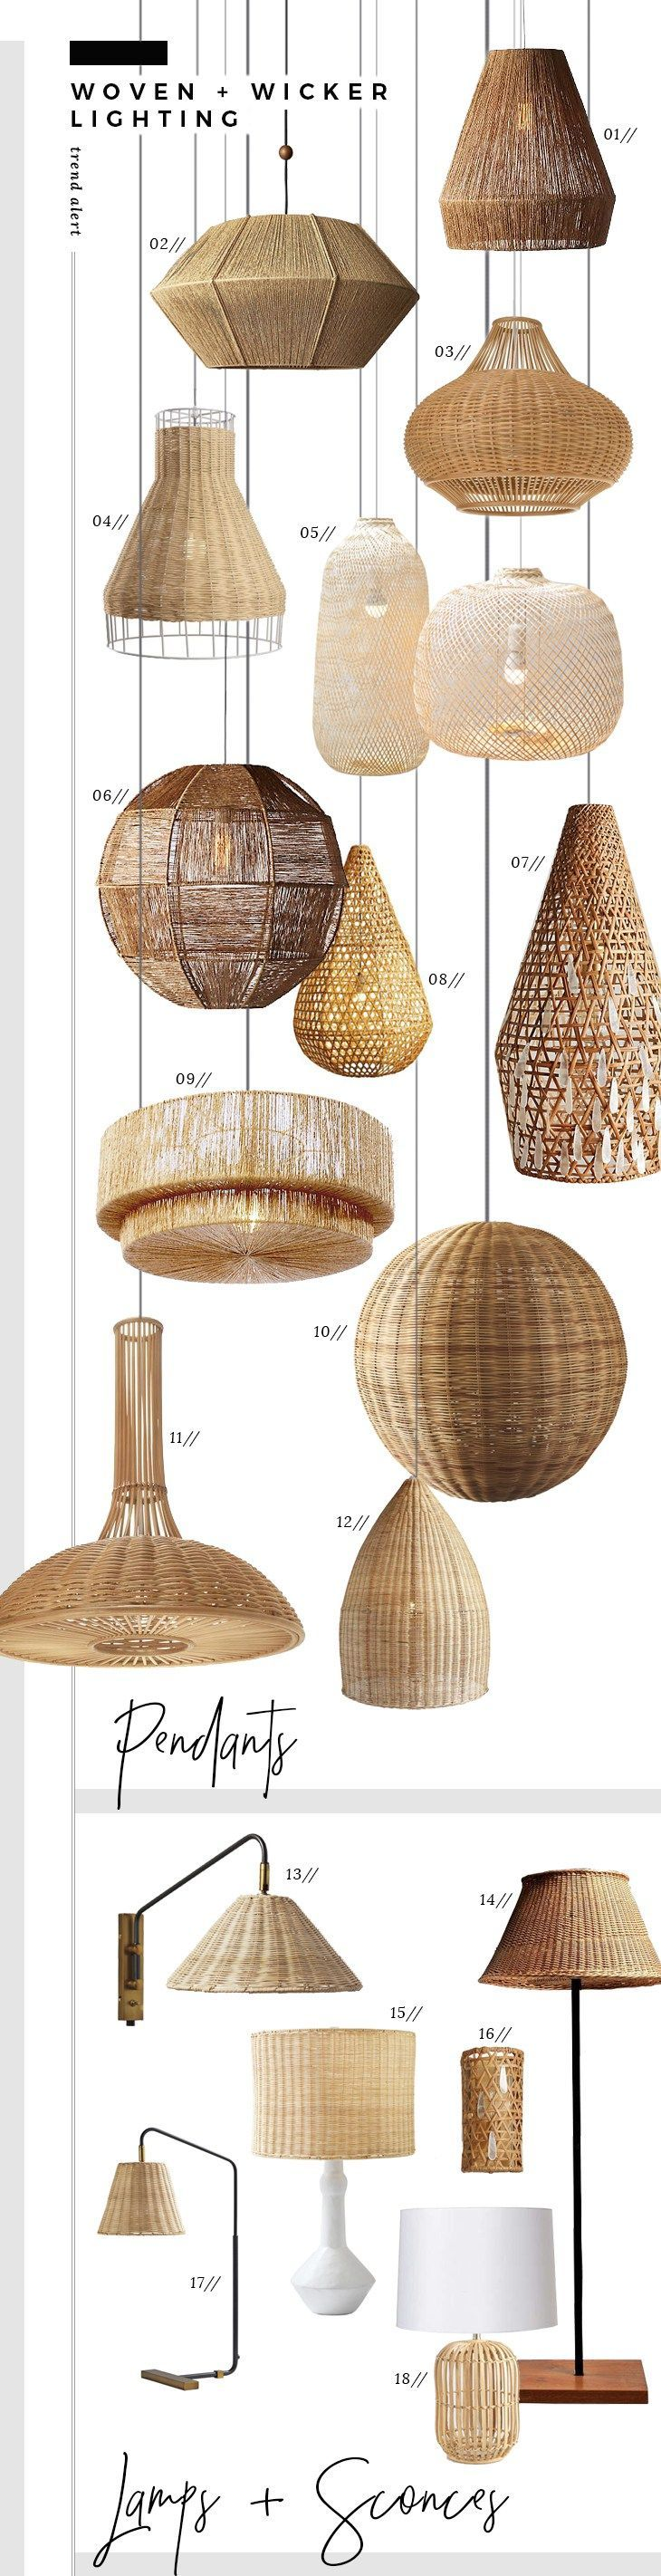 Roundup : Woven Light Fixtures - Room for Tuesday Blog #pendantlighting